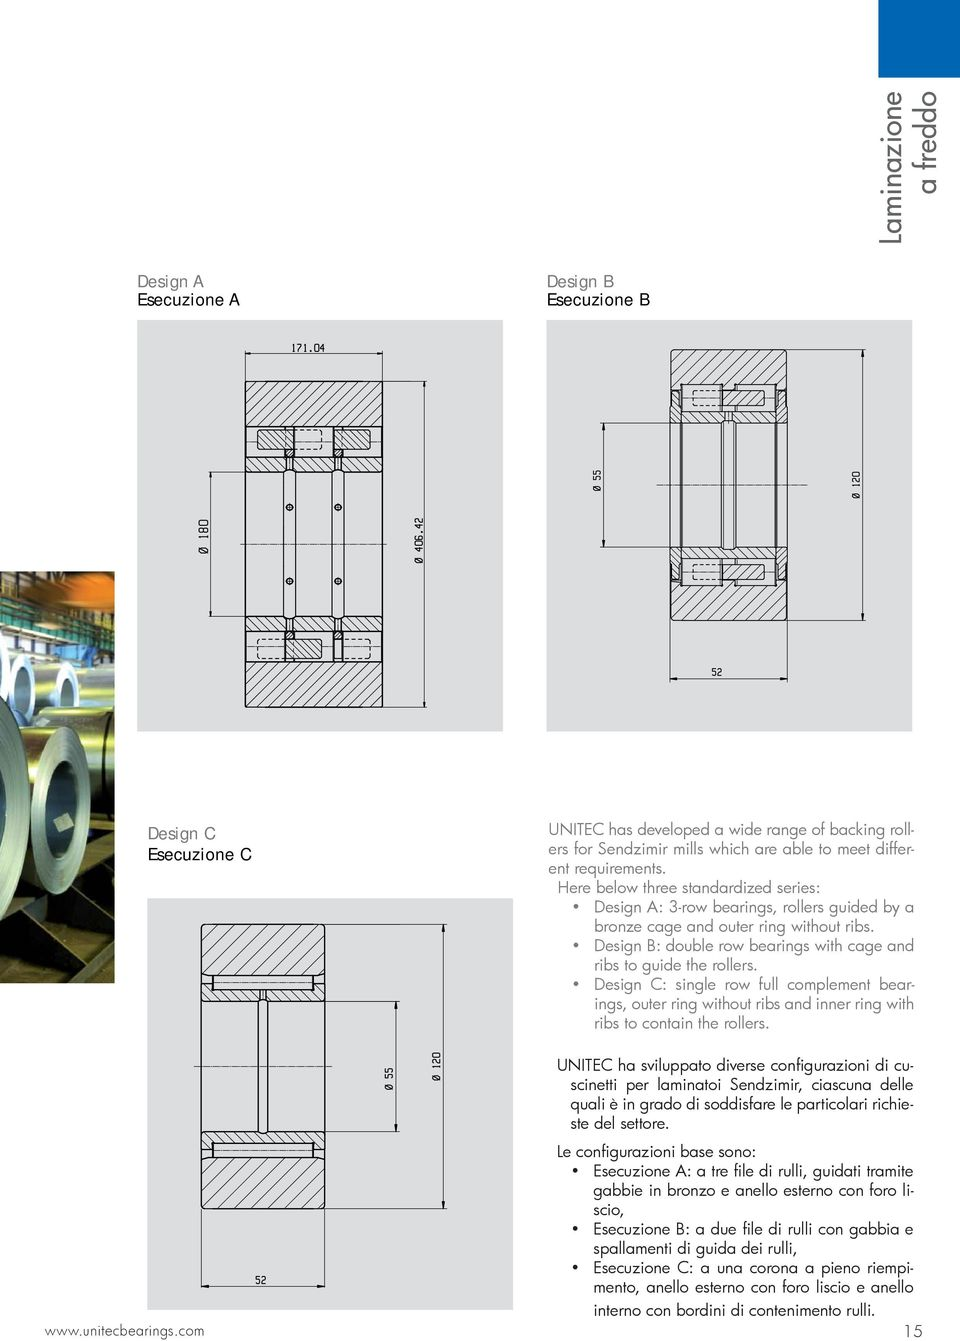 Design B: double row bearings with cage and ribs to guide the rollers. Design C: single row full complement bearings, outer ring without ribs and inner ring with ribs to contain the rollers.